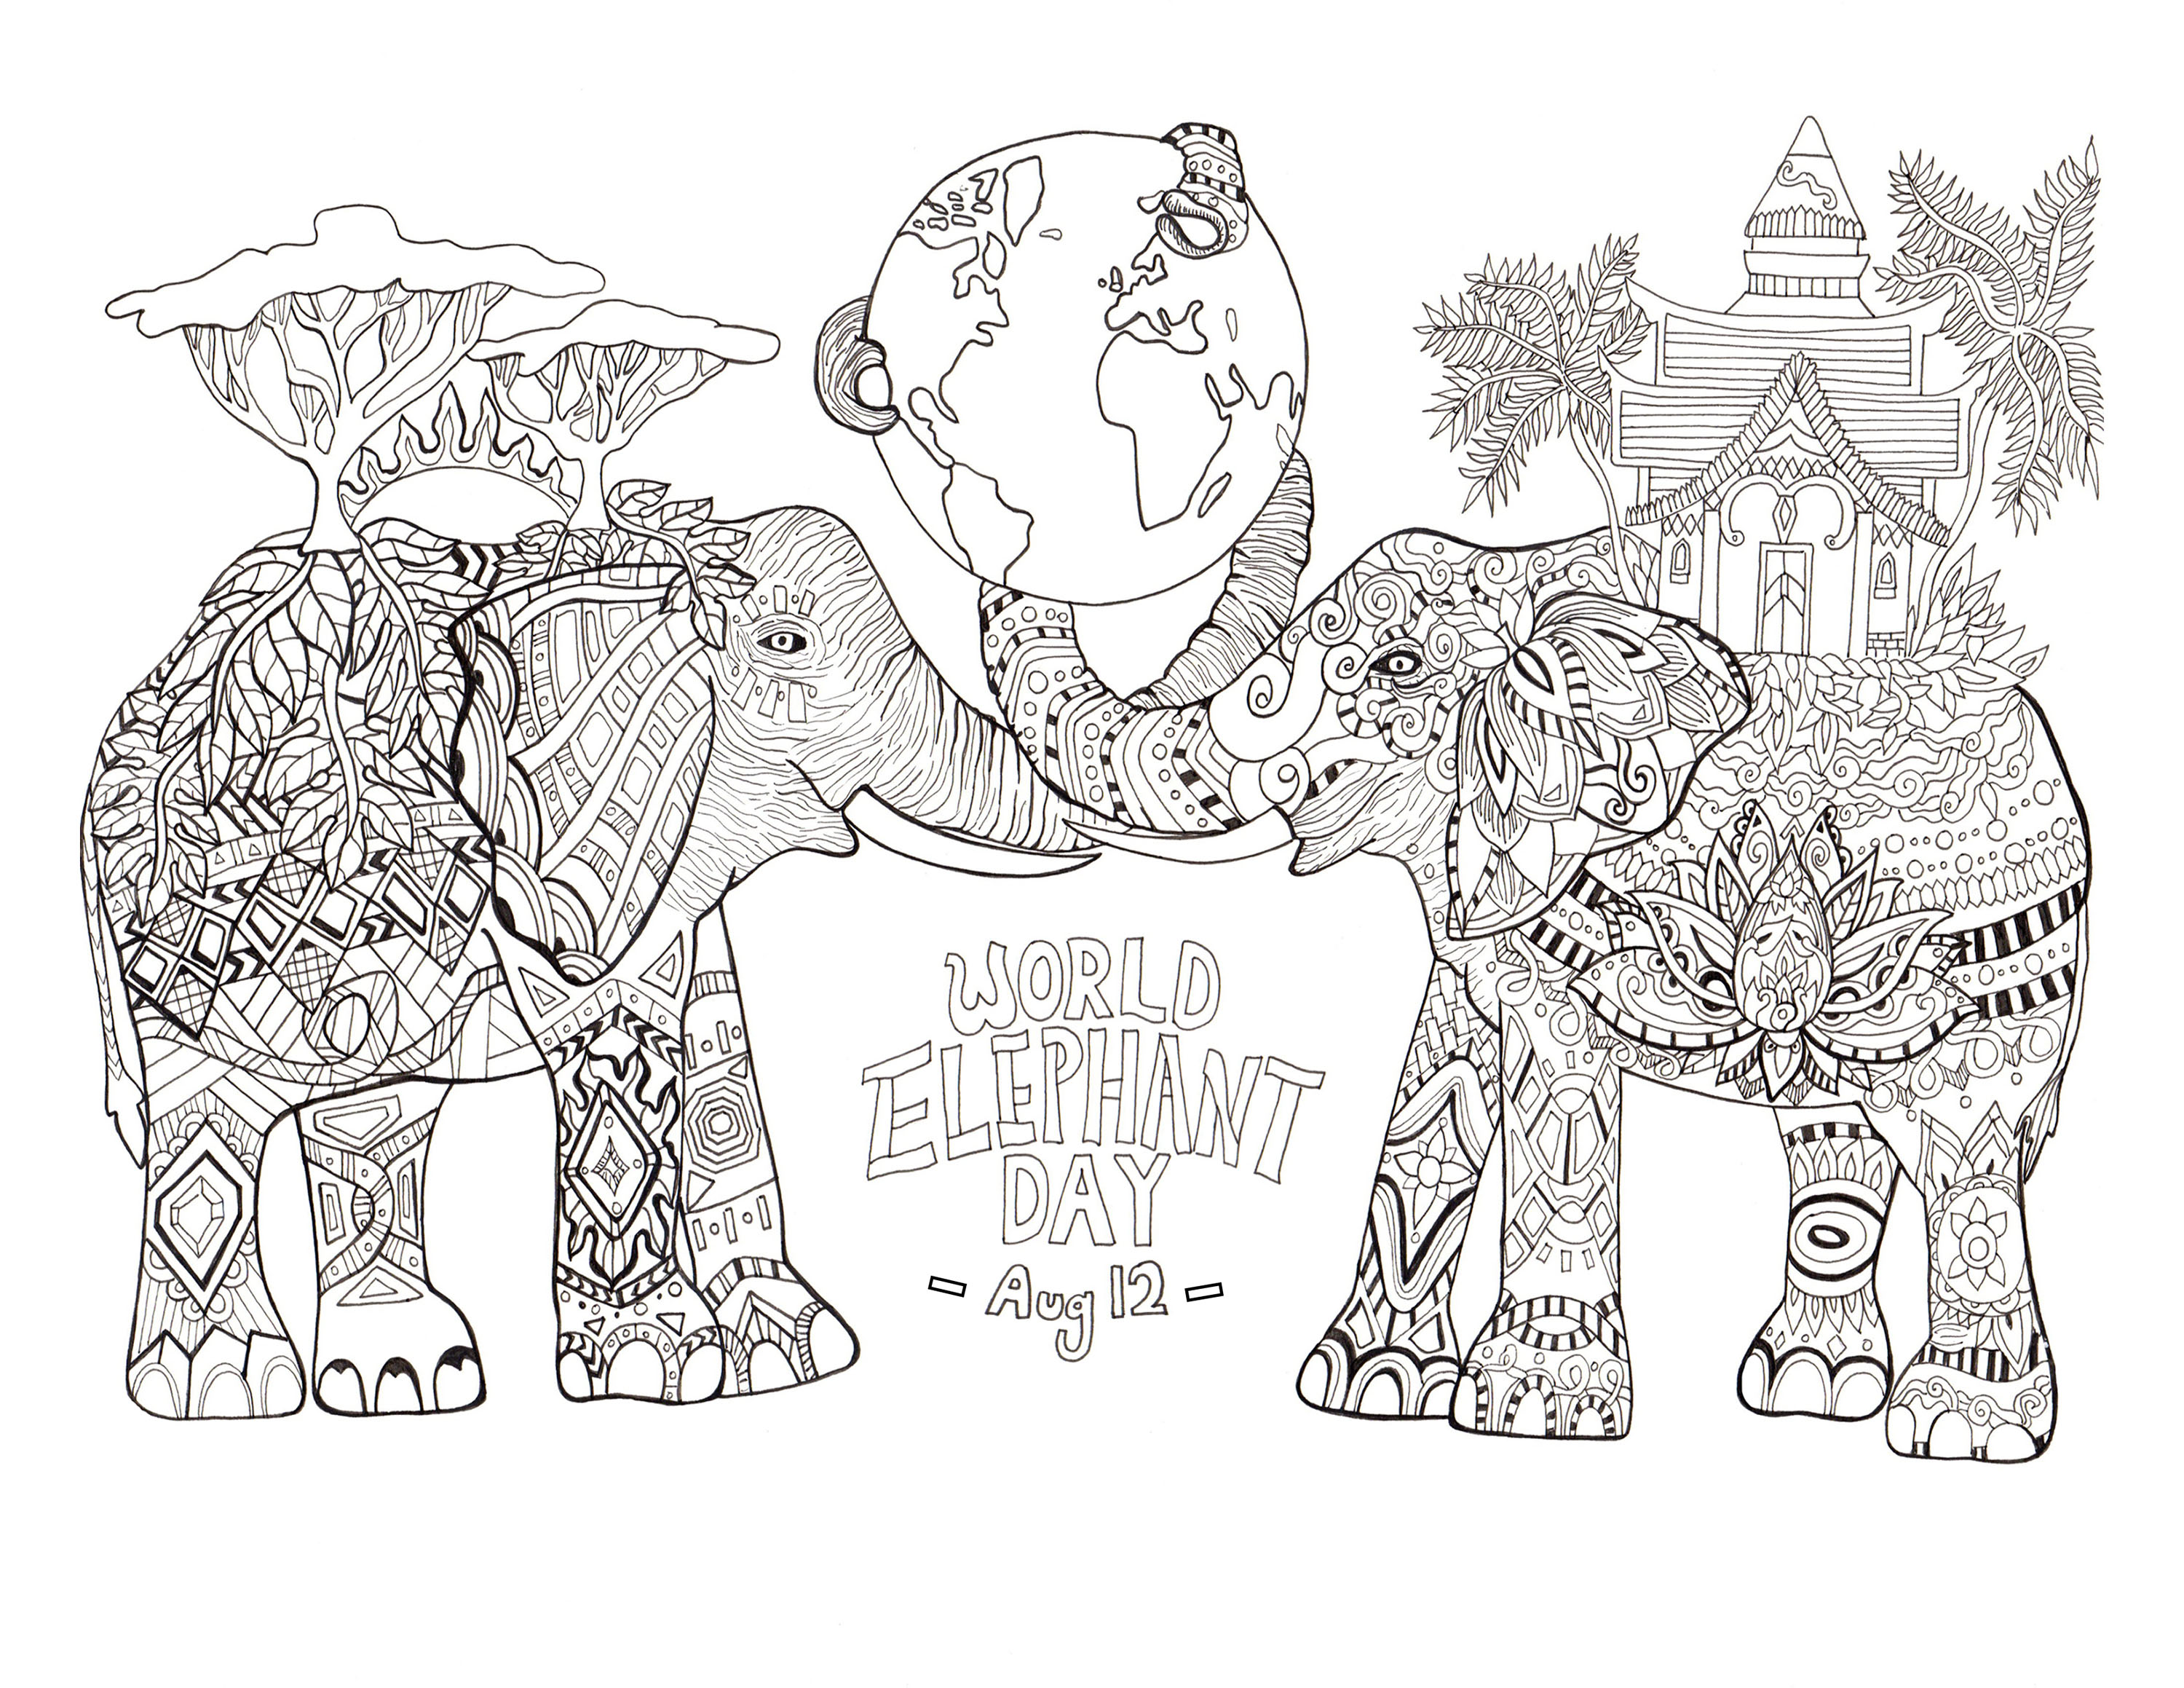 Elephant coloring pages free - Coloring Page World Elephant Day Free To Print